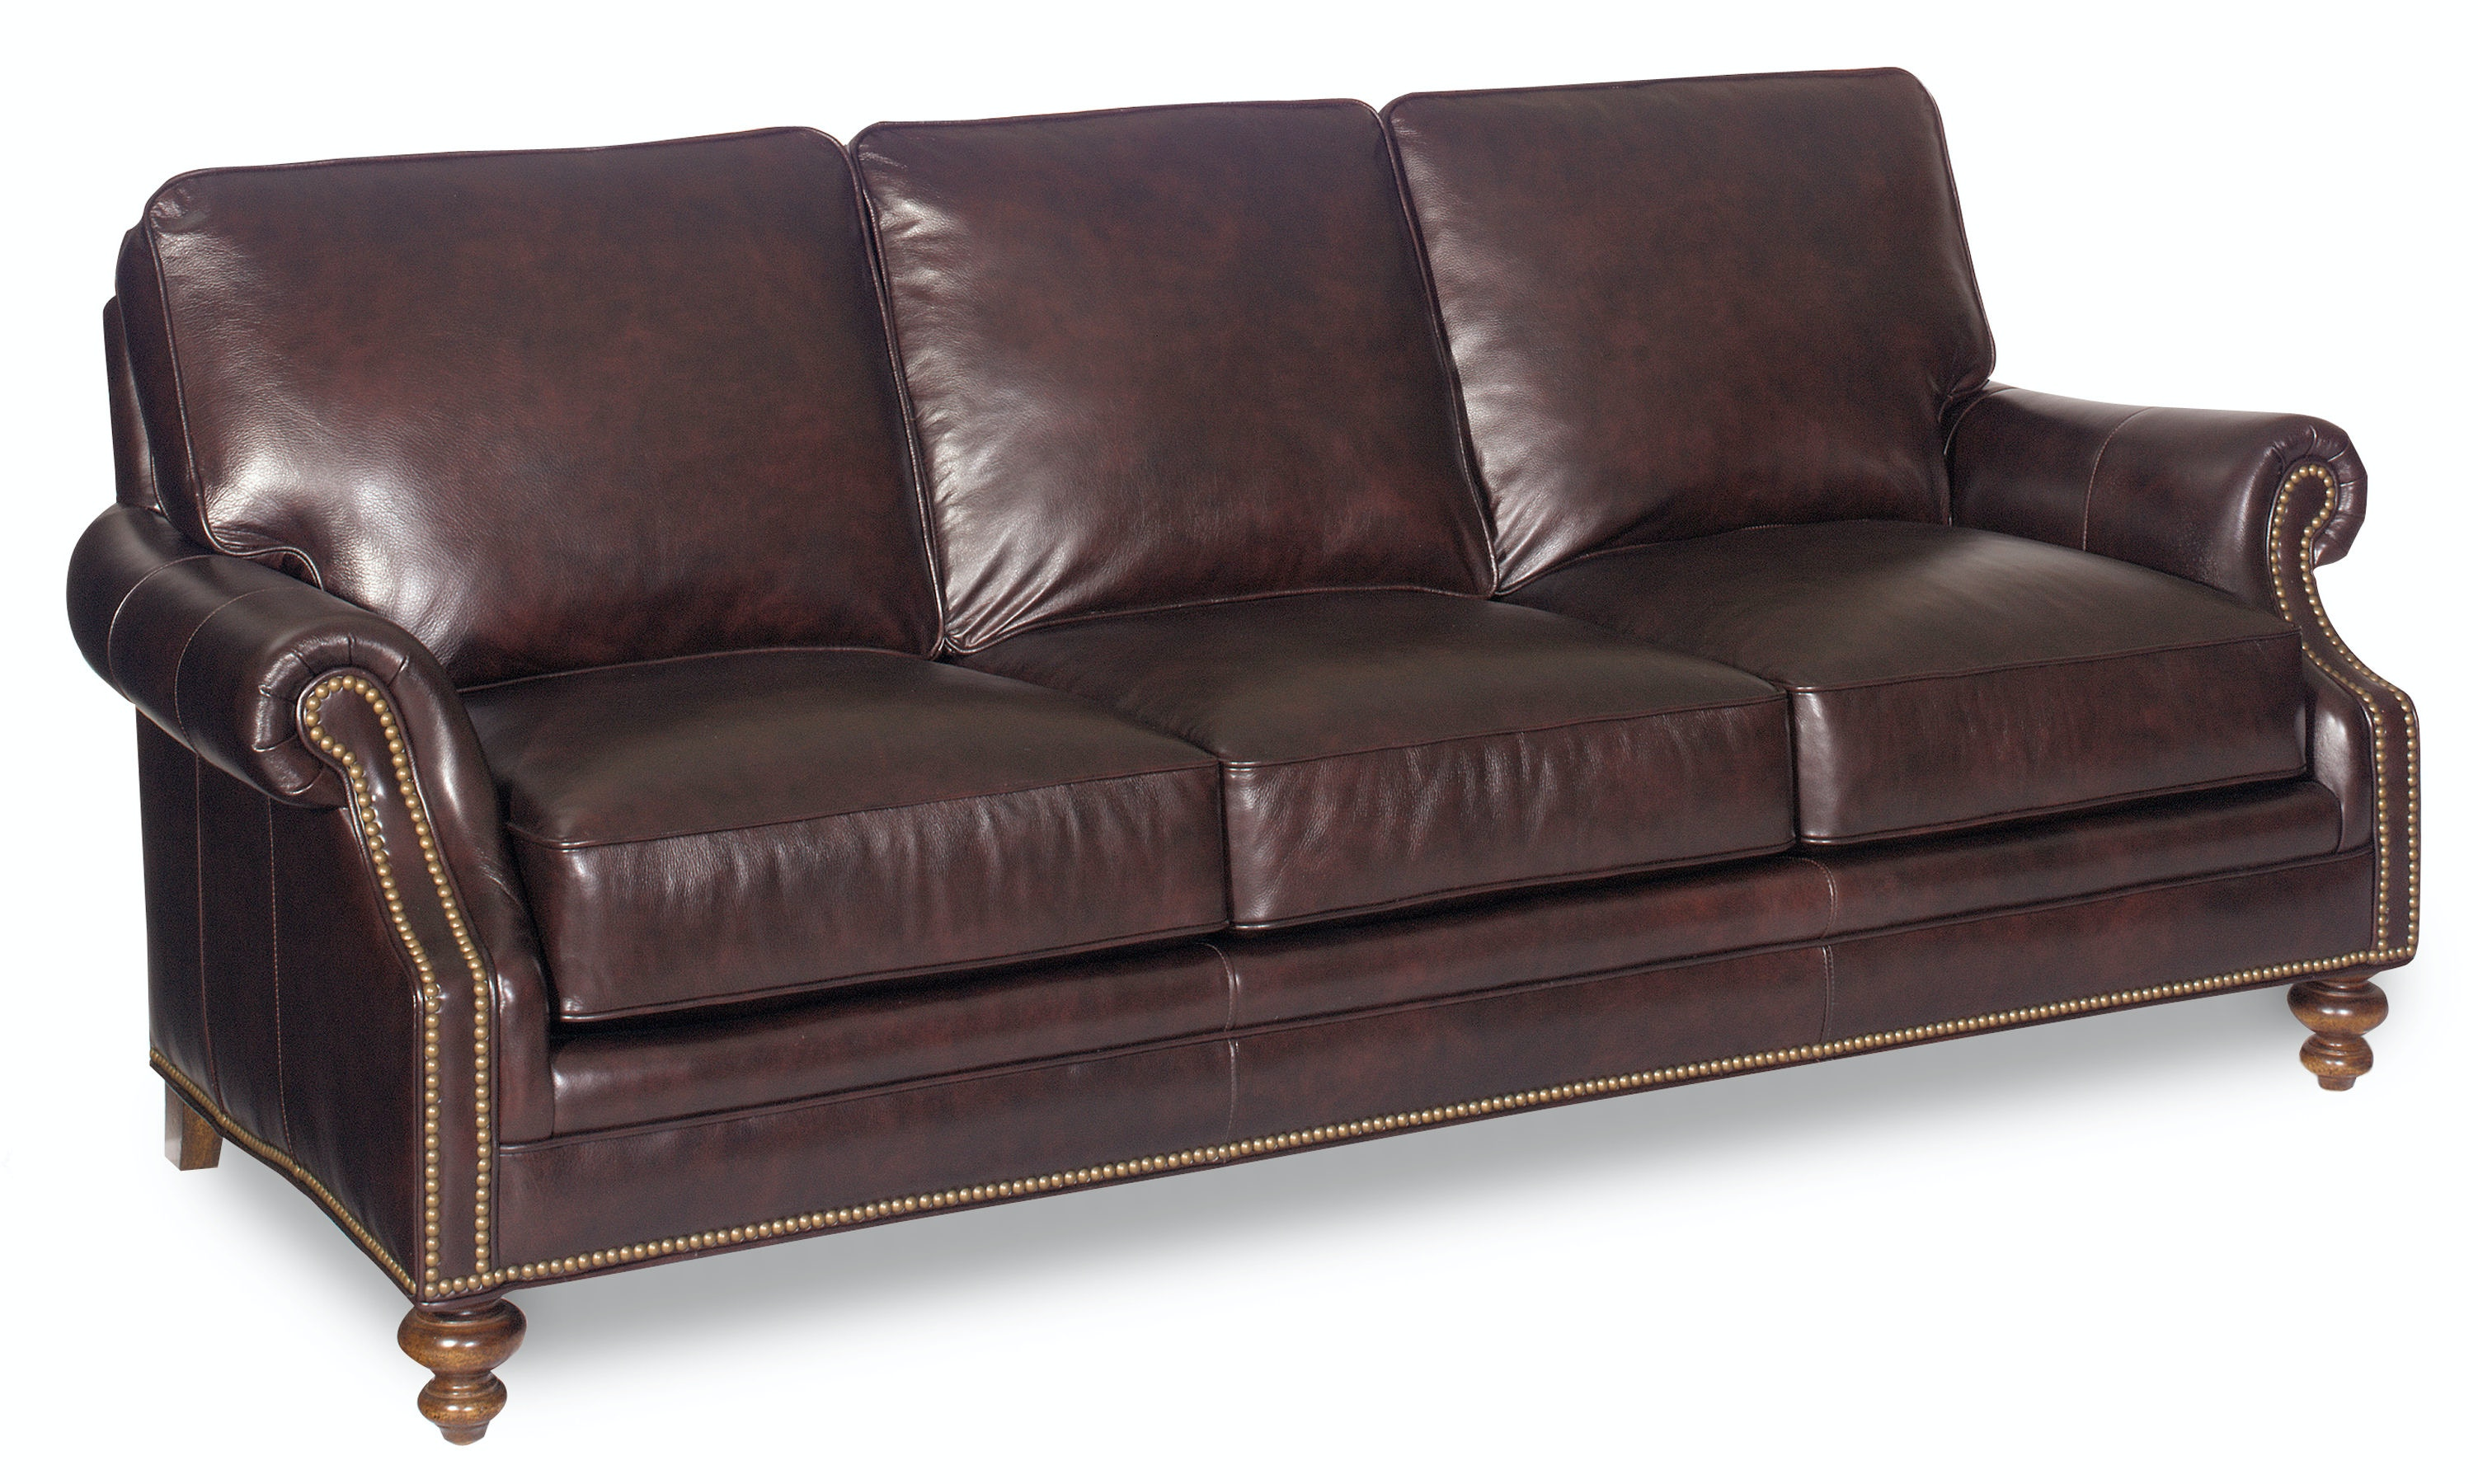 Bradington Young Living Room West Haven Stationary Sofa 8 Way Tie